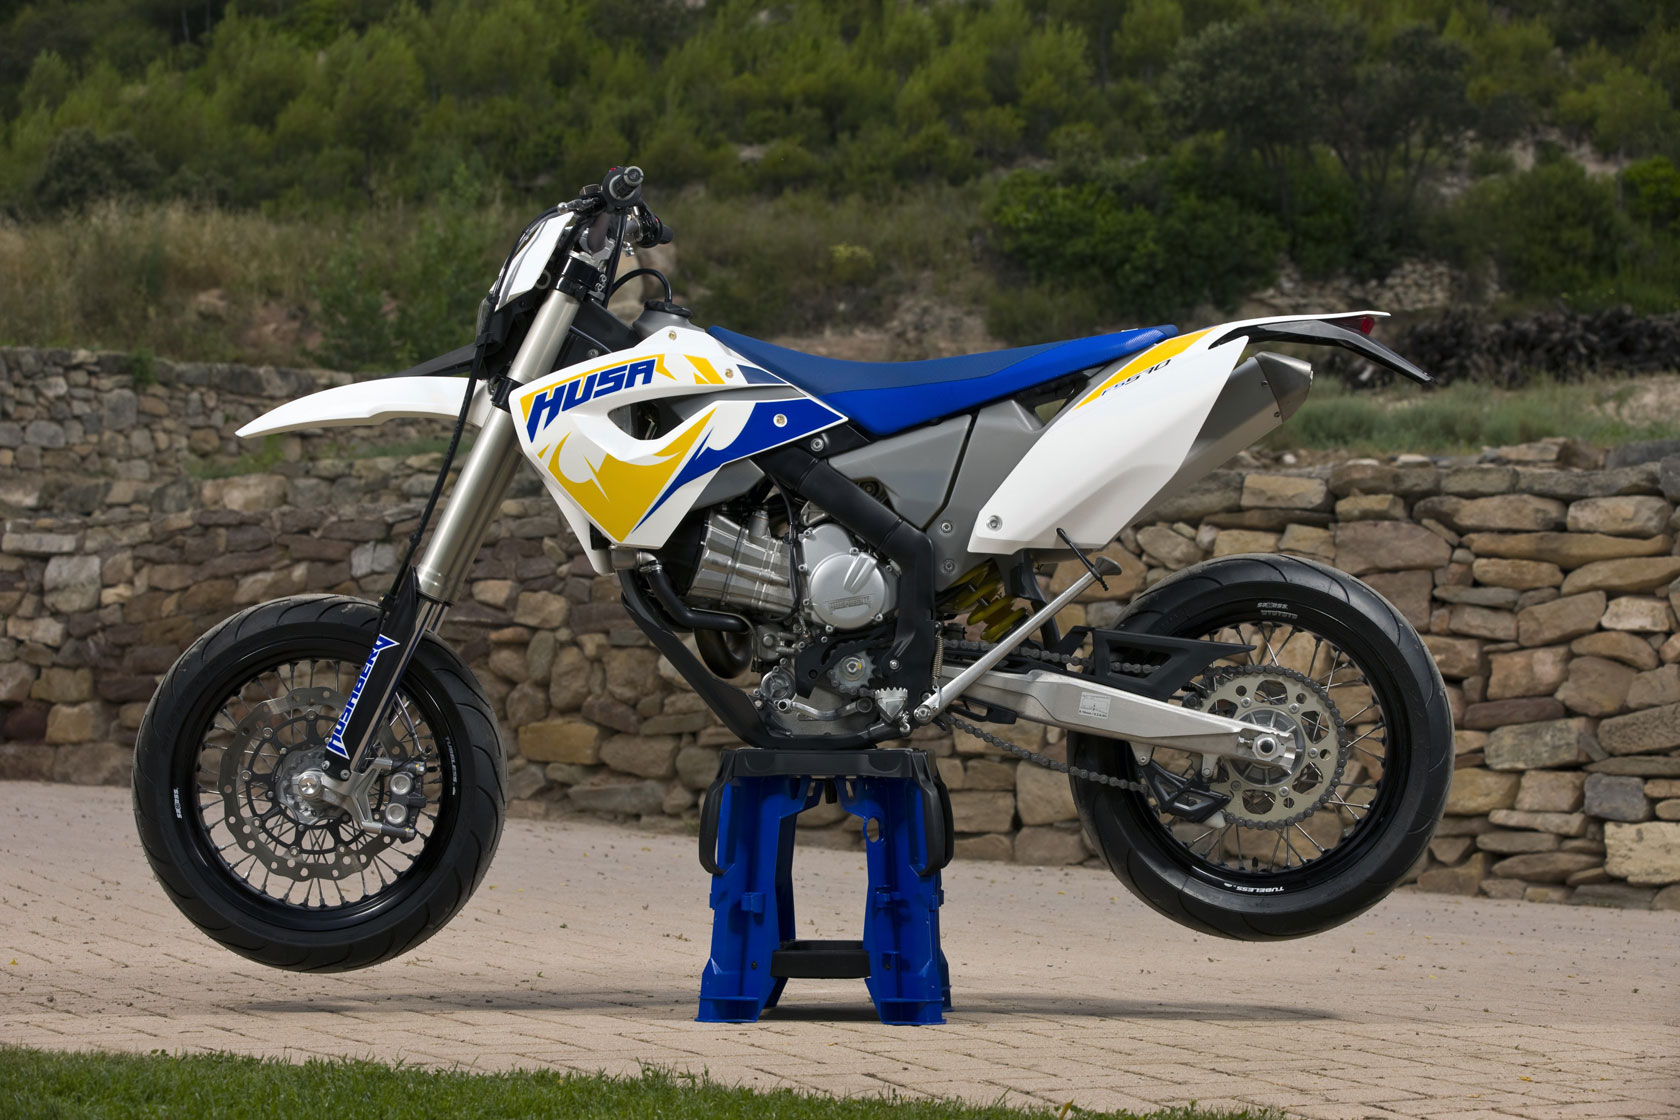 Husaberg Super motard #13